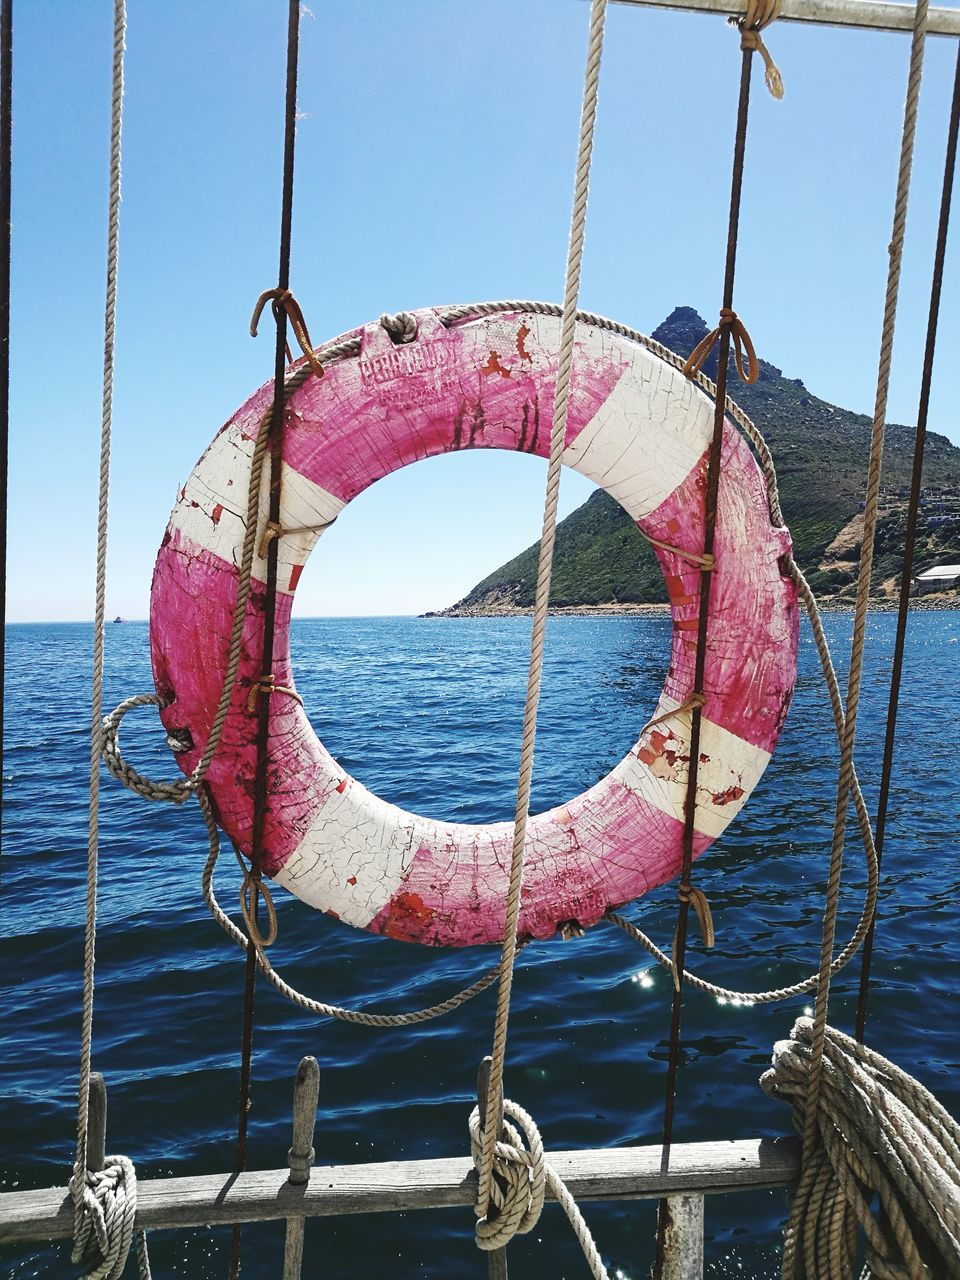 water, nautical vessel, rope, mode of transport, transportation, sea, boat, life belt, tied up, no people, safety, sky, day, nature, outdoors, moored, beauty in nature, sailing, hanging, clear sky, scenics, sailboat, close-up, boat deck